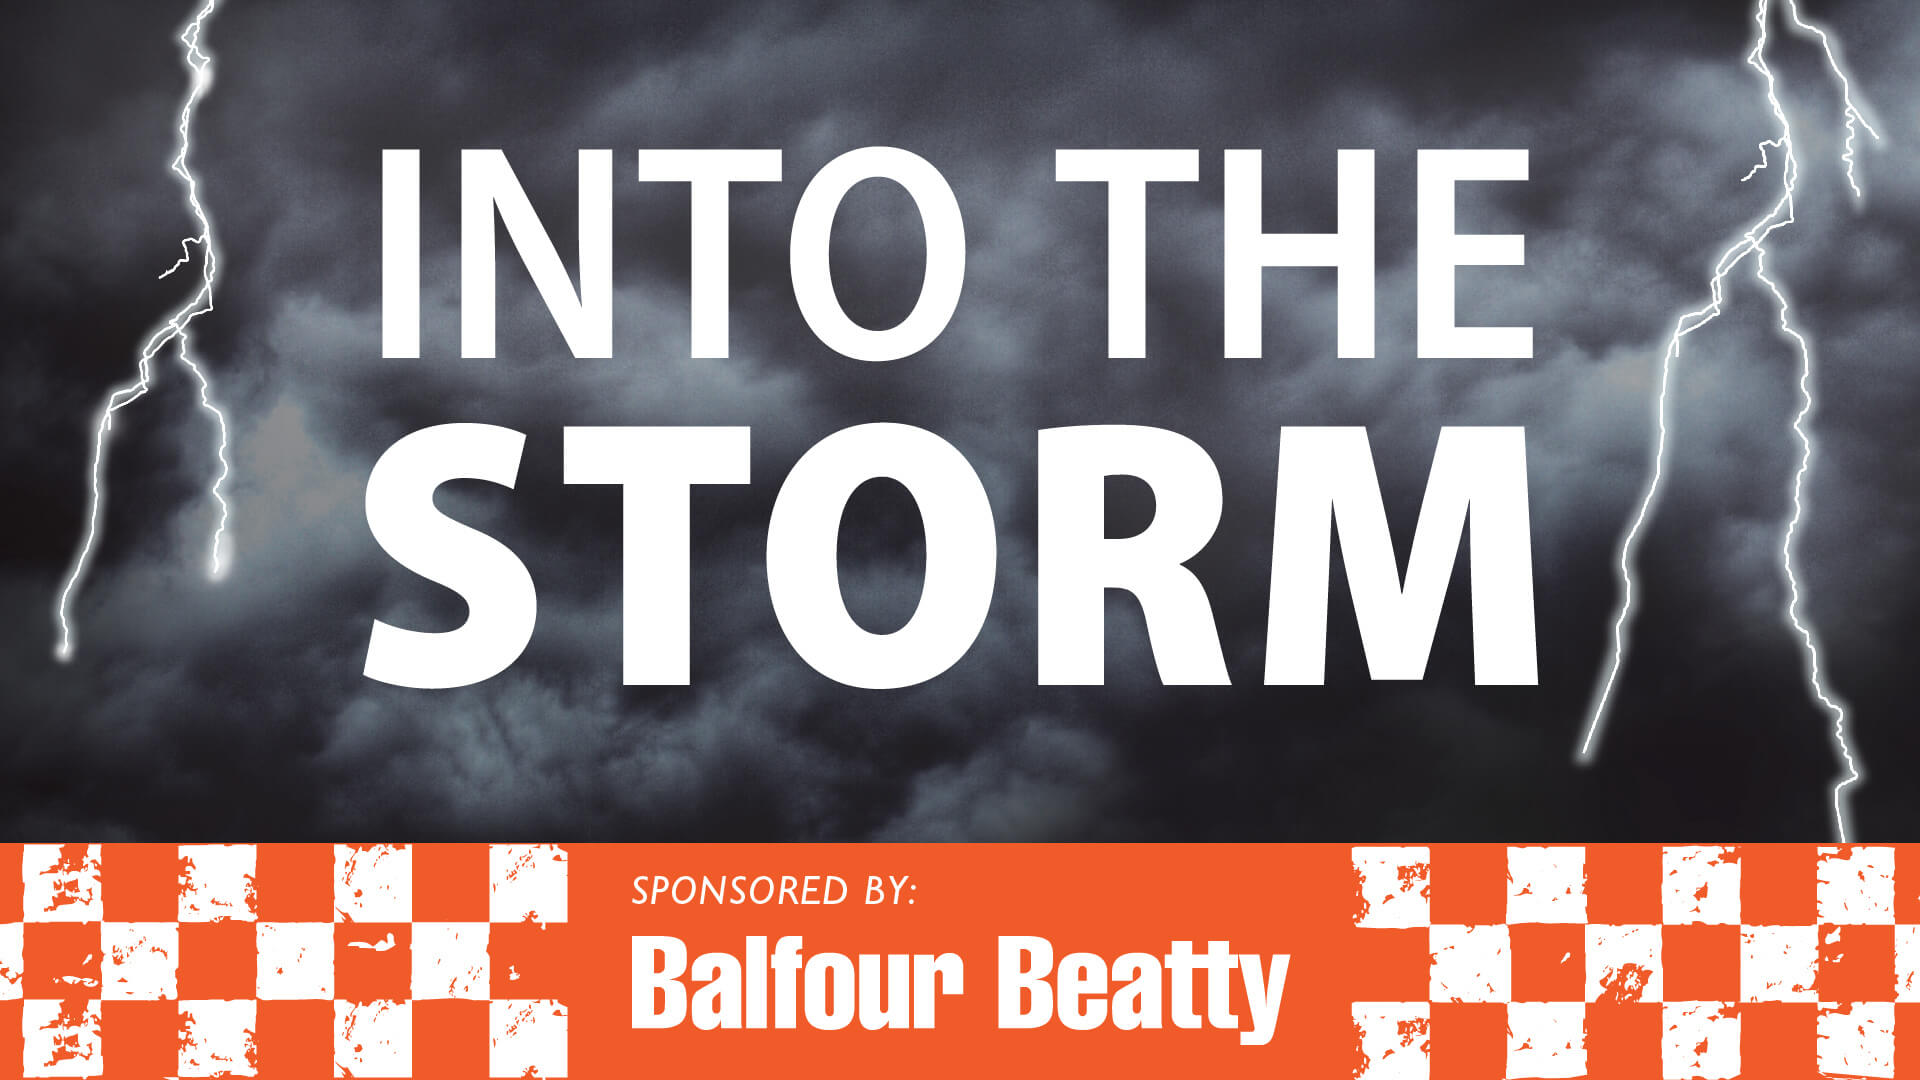 Science Live Show - Into the Storm, Sponsored by Balfour Beatty